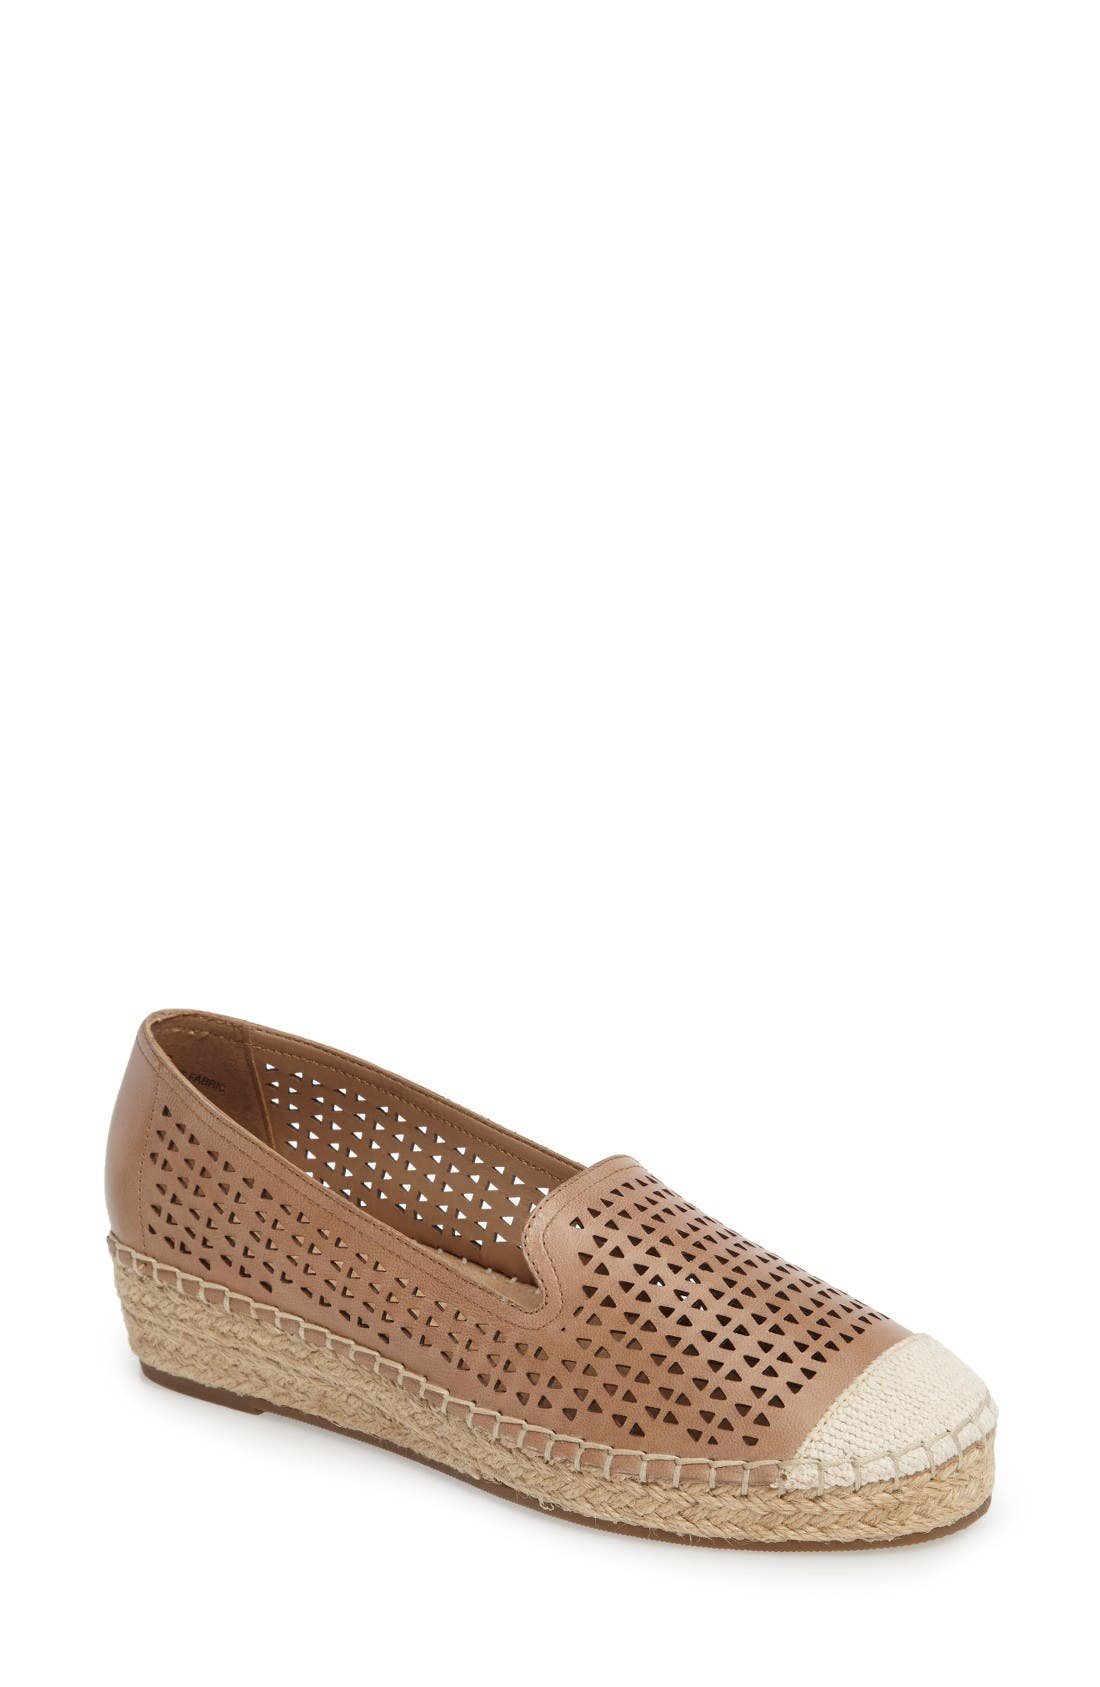 Channing Cutout Espadrille Loafer,                         Main,                         color, Saddle Leather